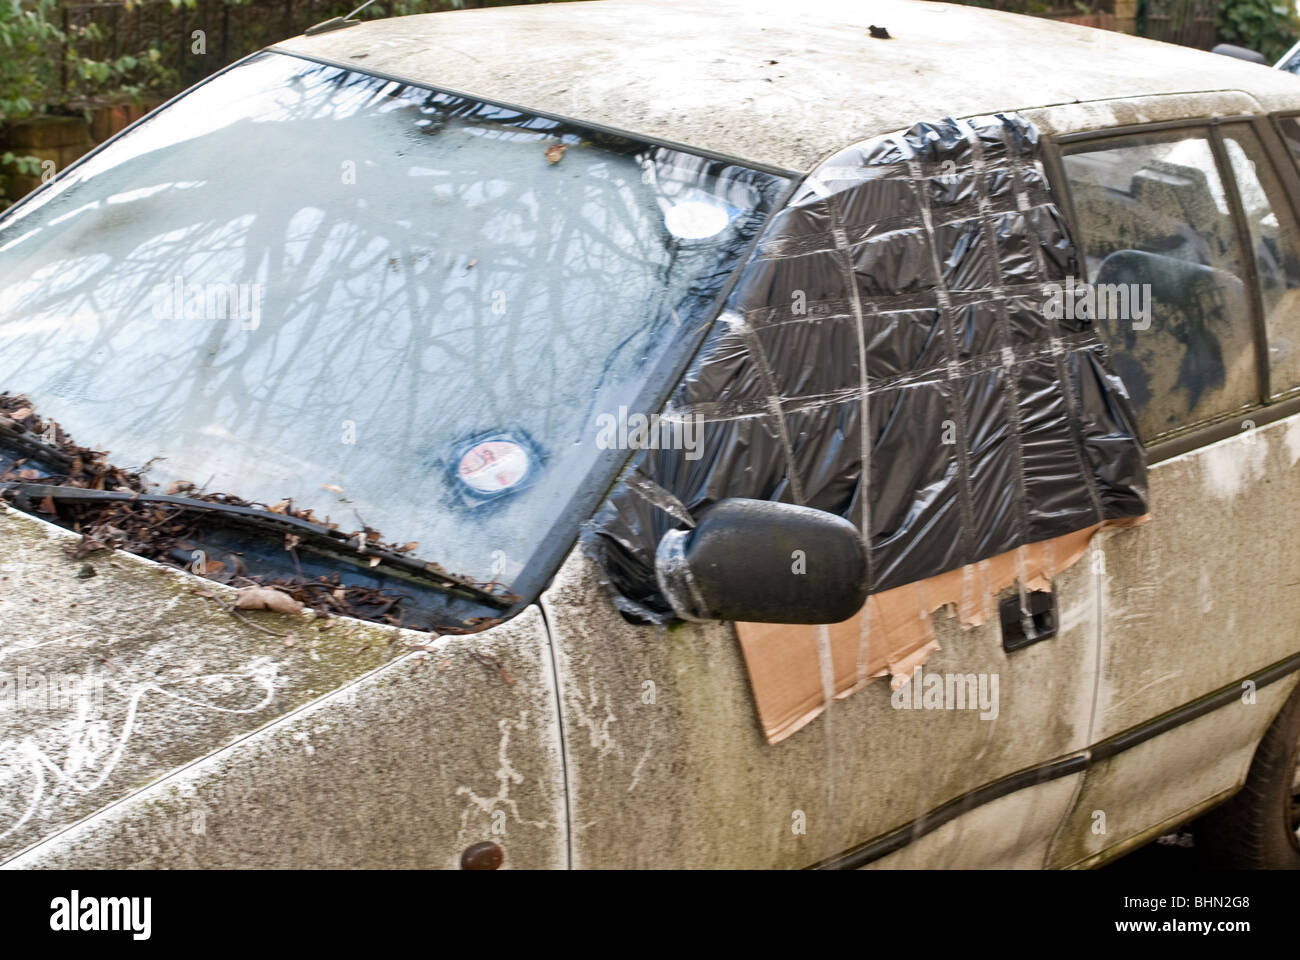 Car in poor condition - Stock Image